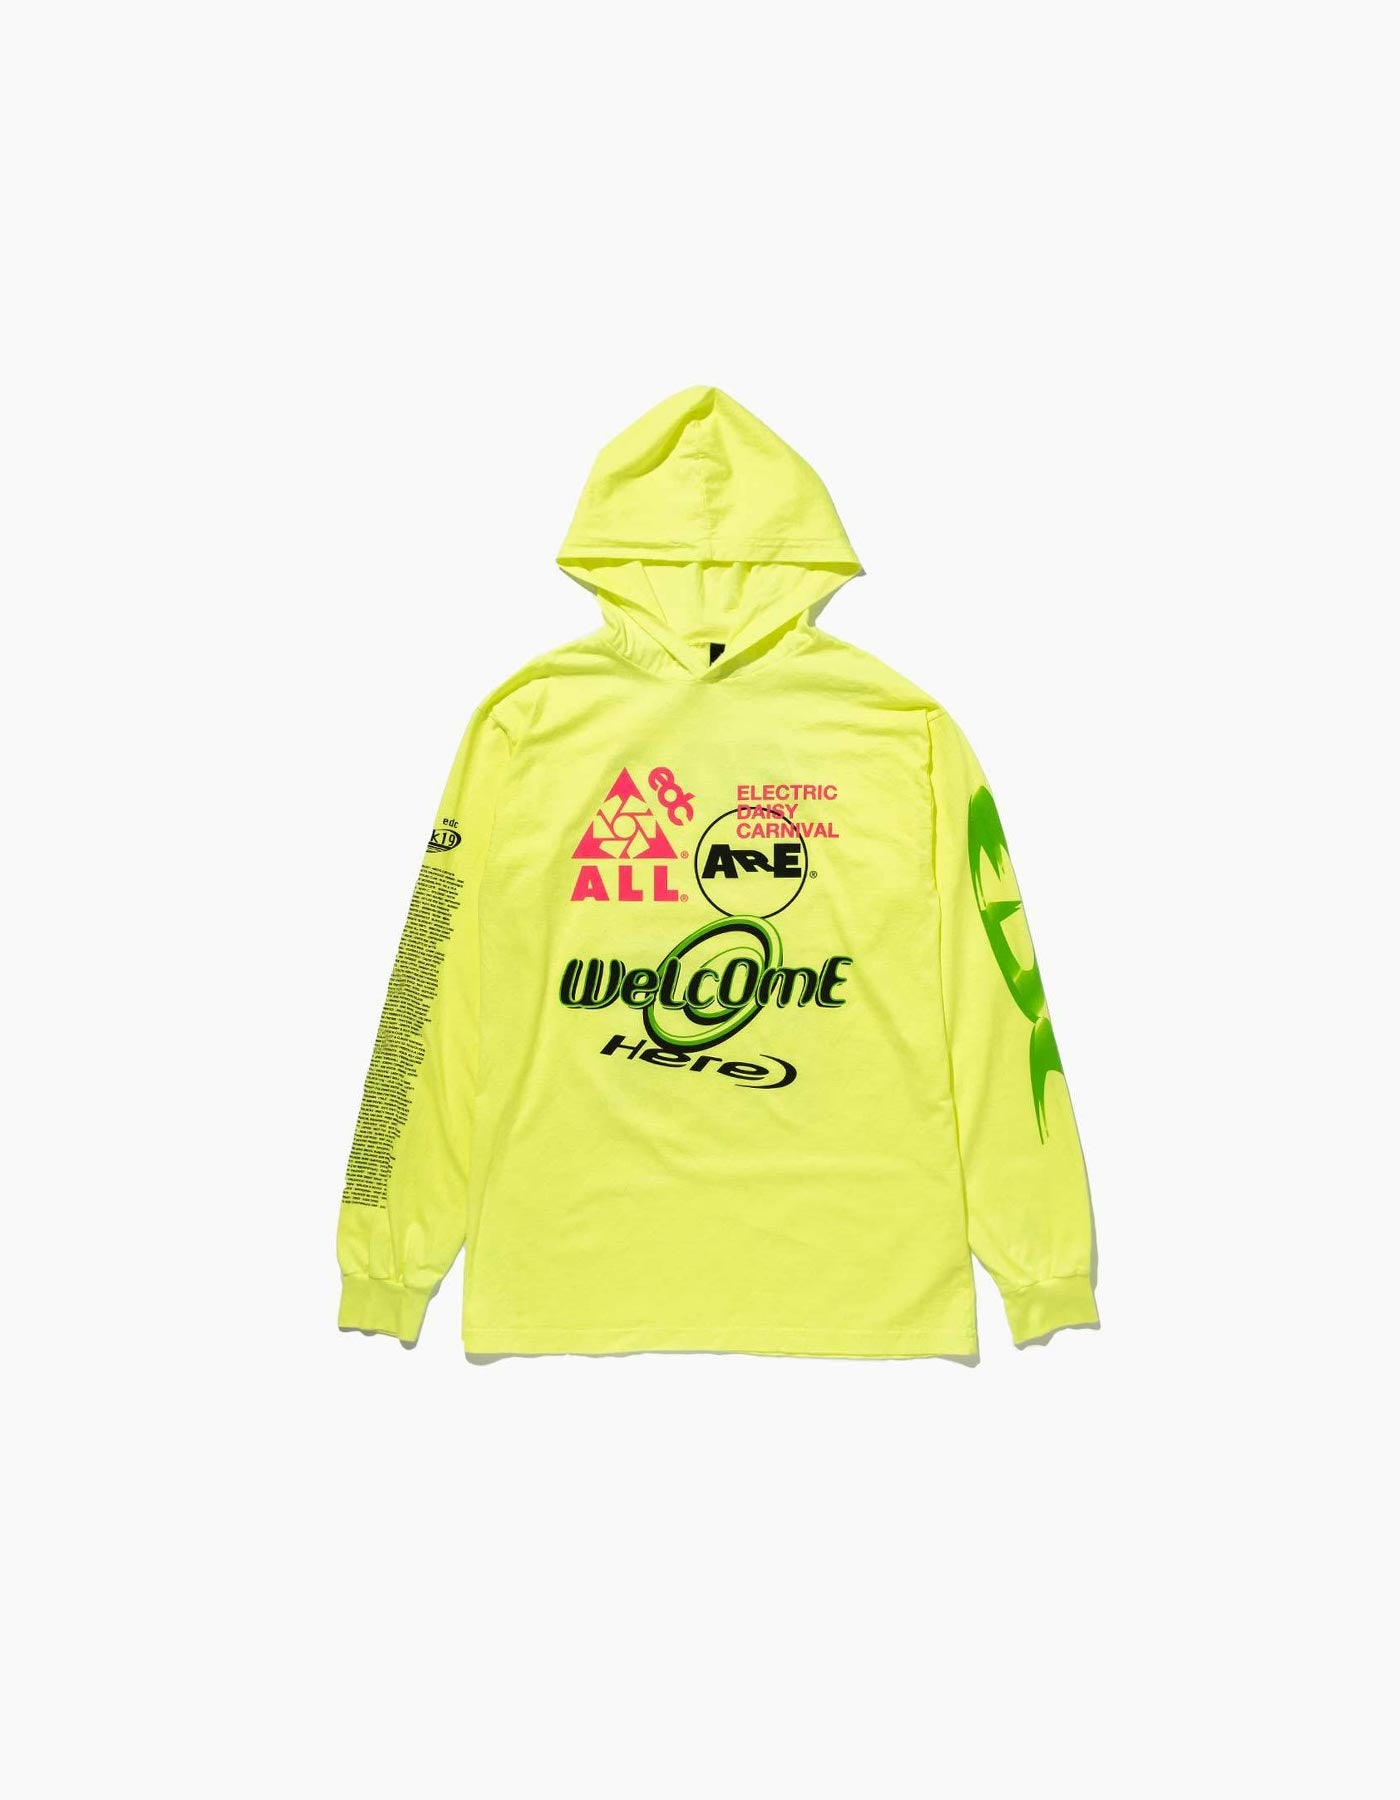 EDC Logomania L/S Hooded Las Vegas 2019 Line Up Tee